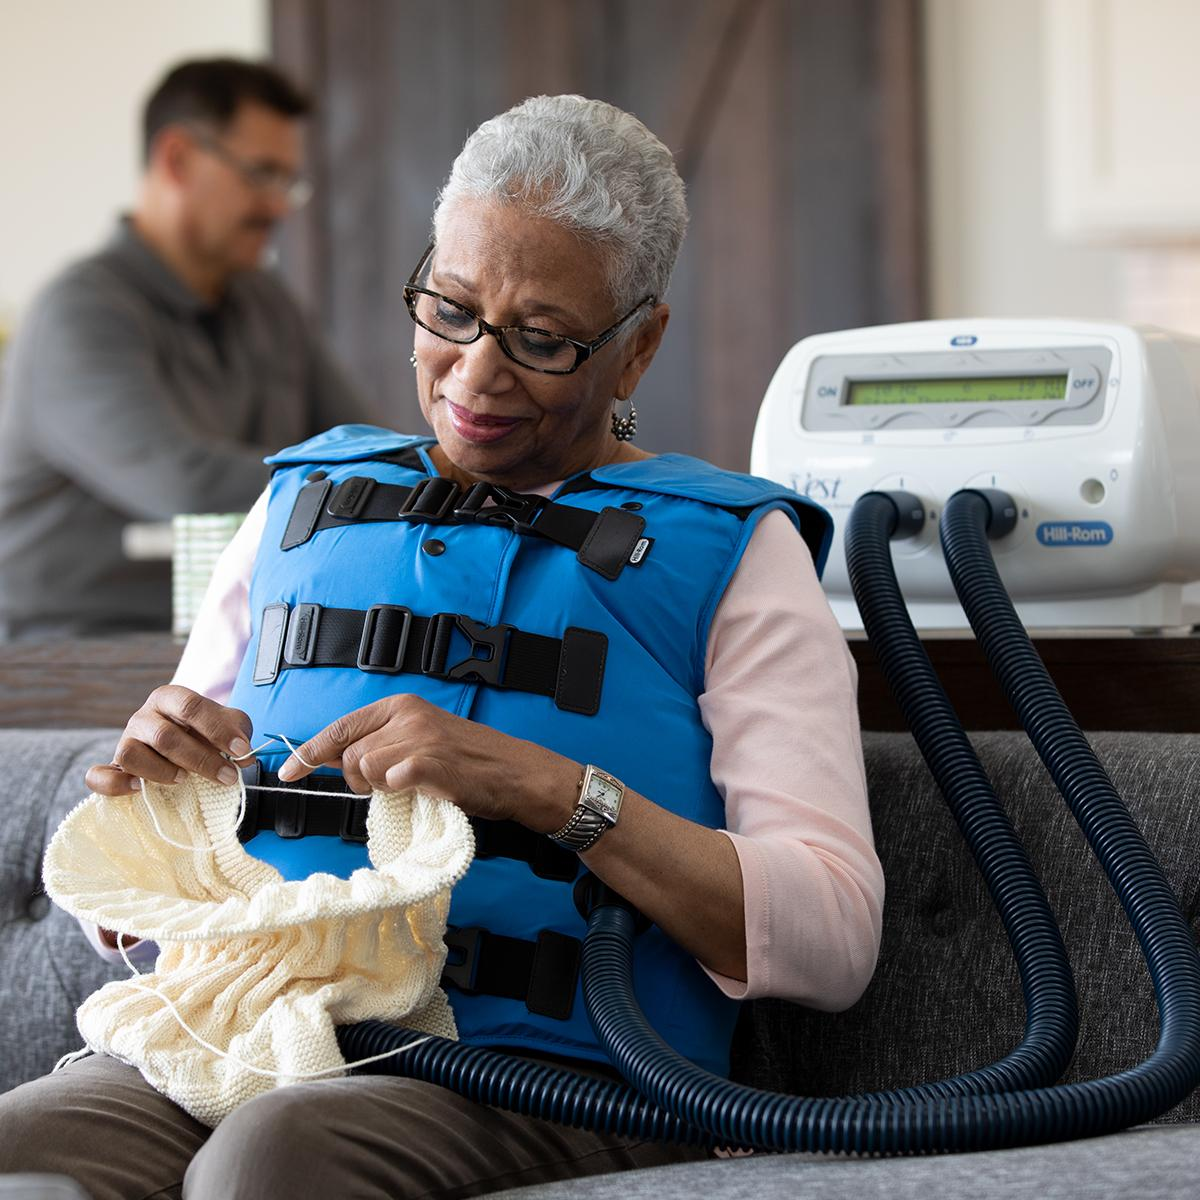 An older woman knits in her living room while using The Vest System with a Coastal Blue vest.